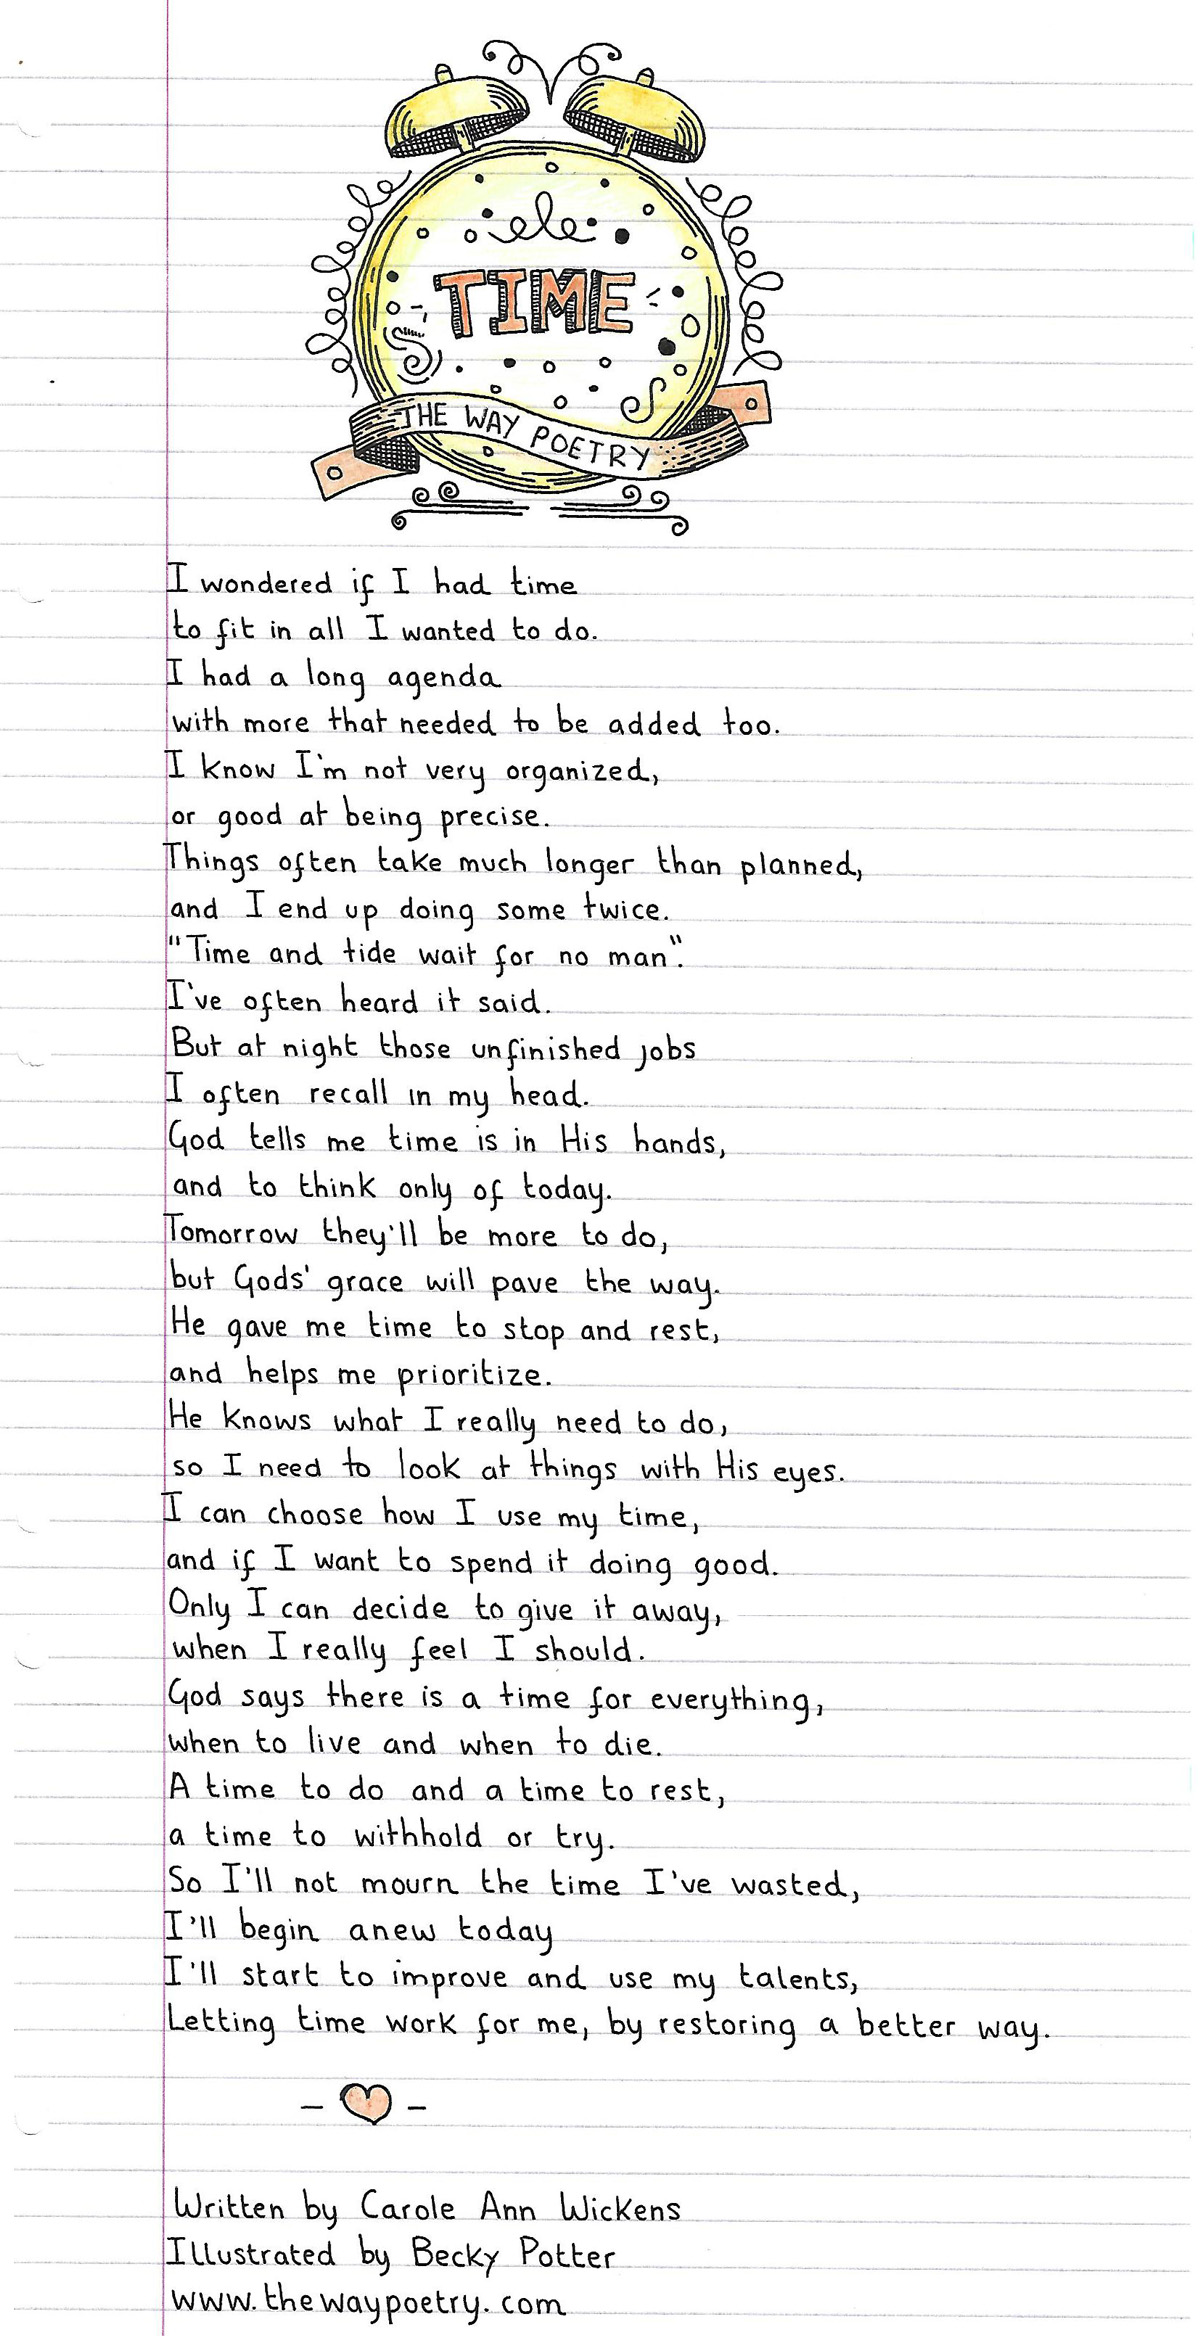 Time by Carole Ann Wickens